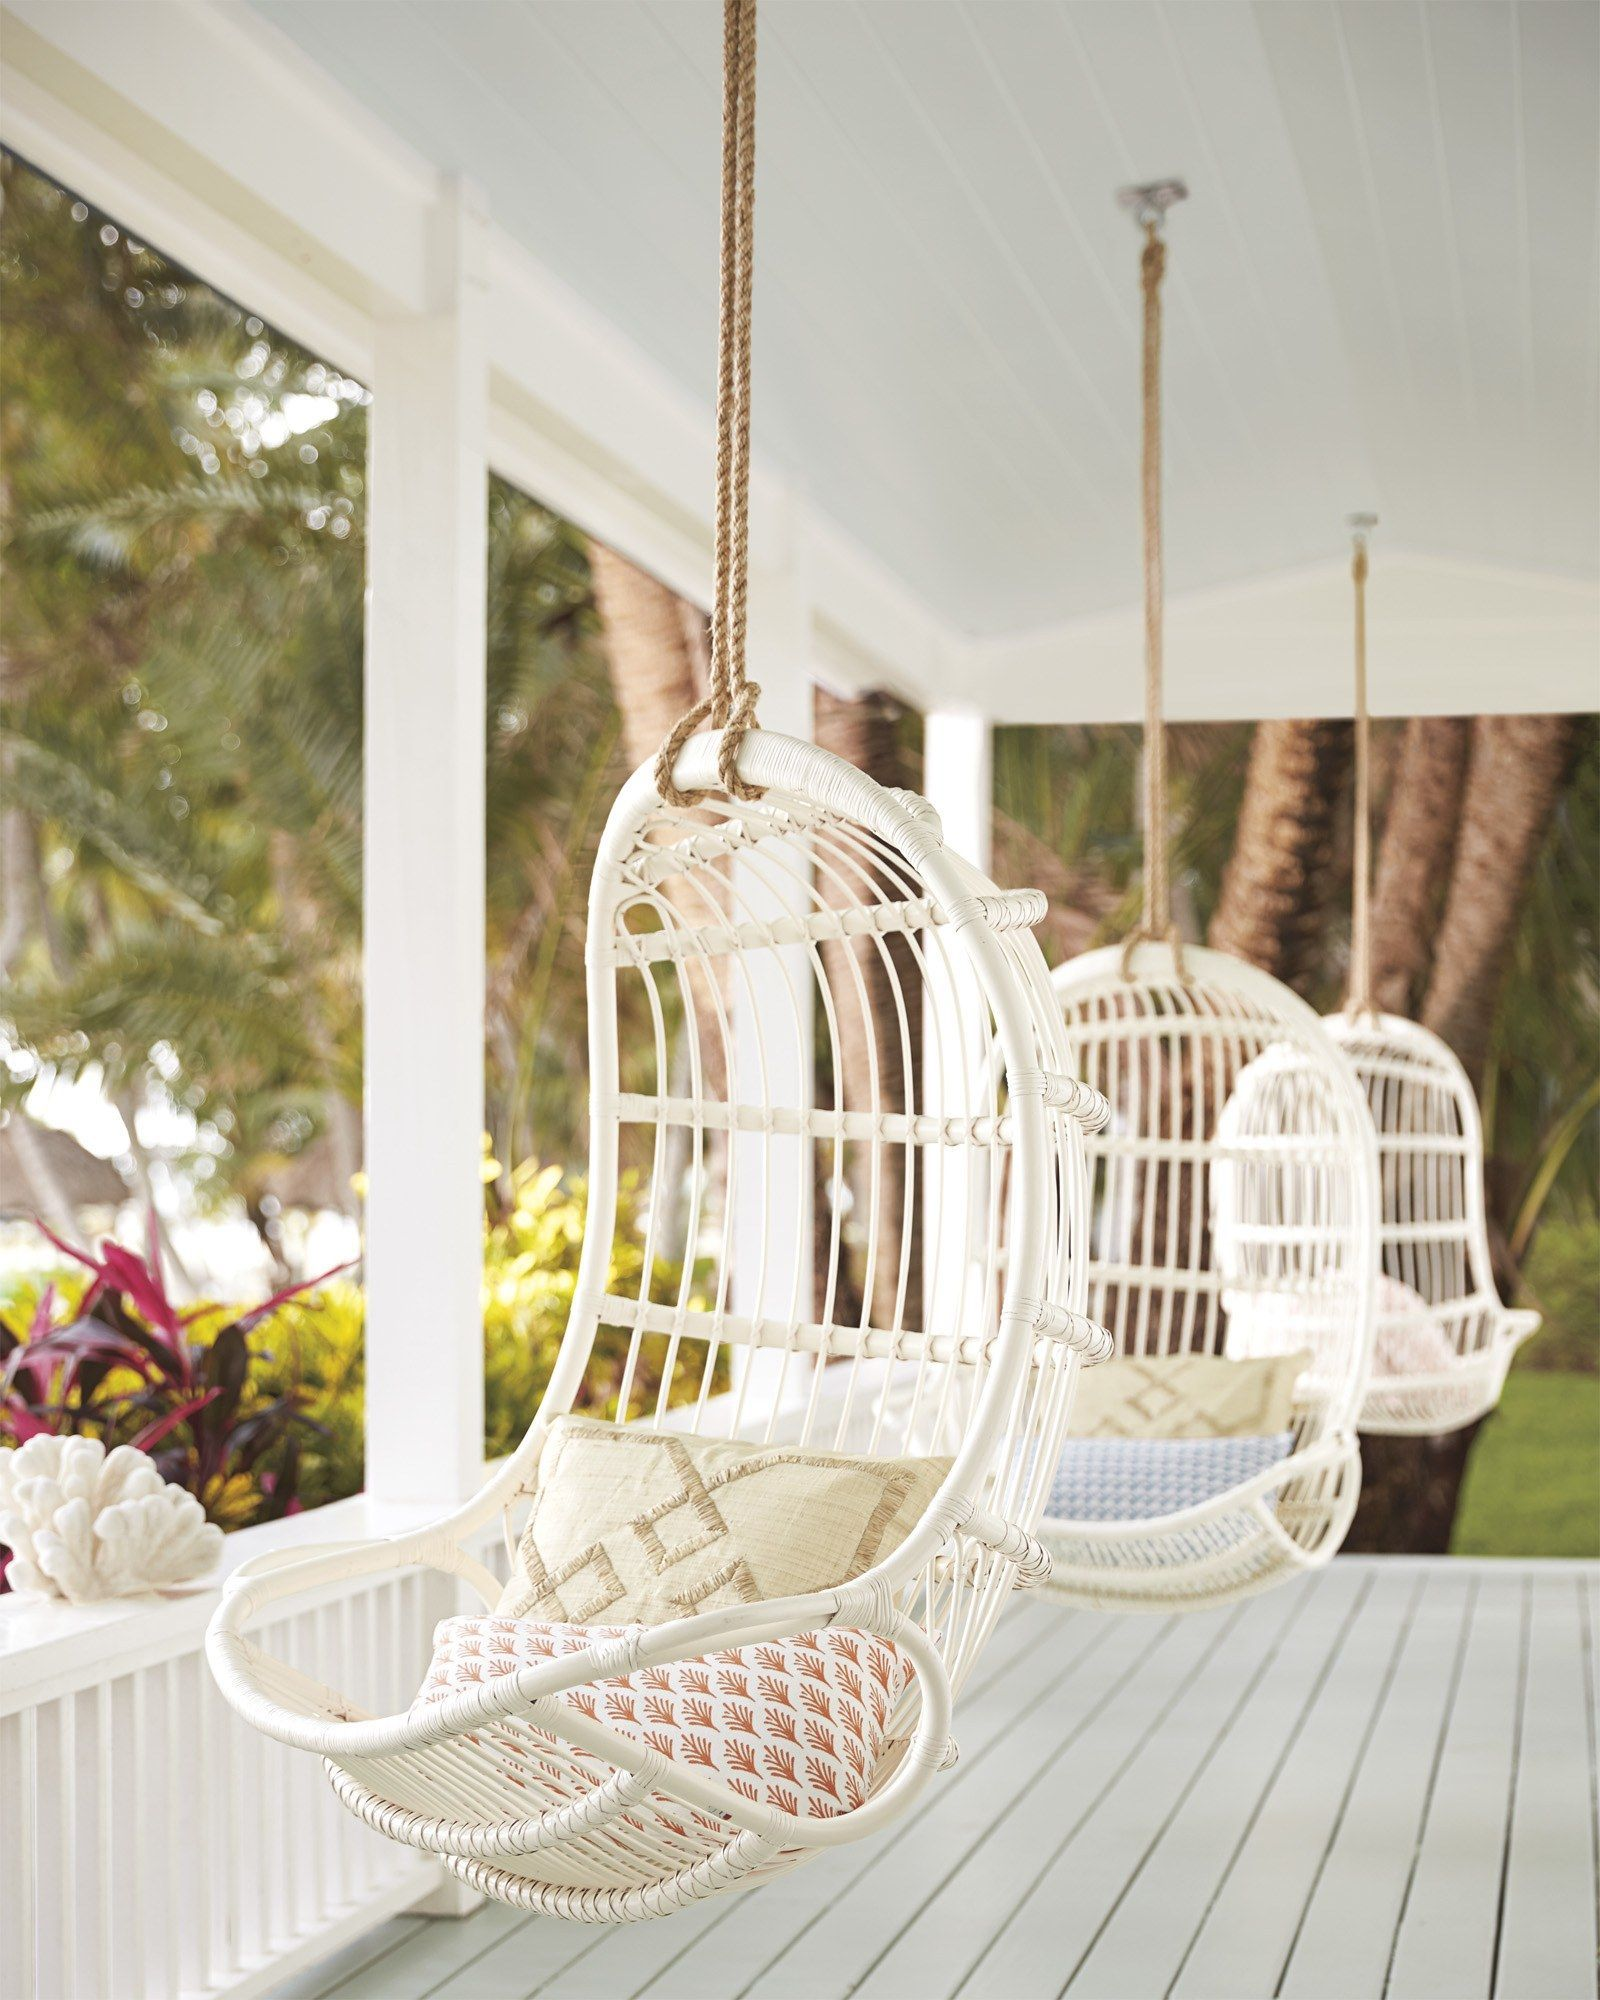 Serena and Lilyu0027s Scandi style hanging rattan chair